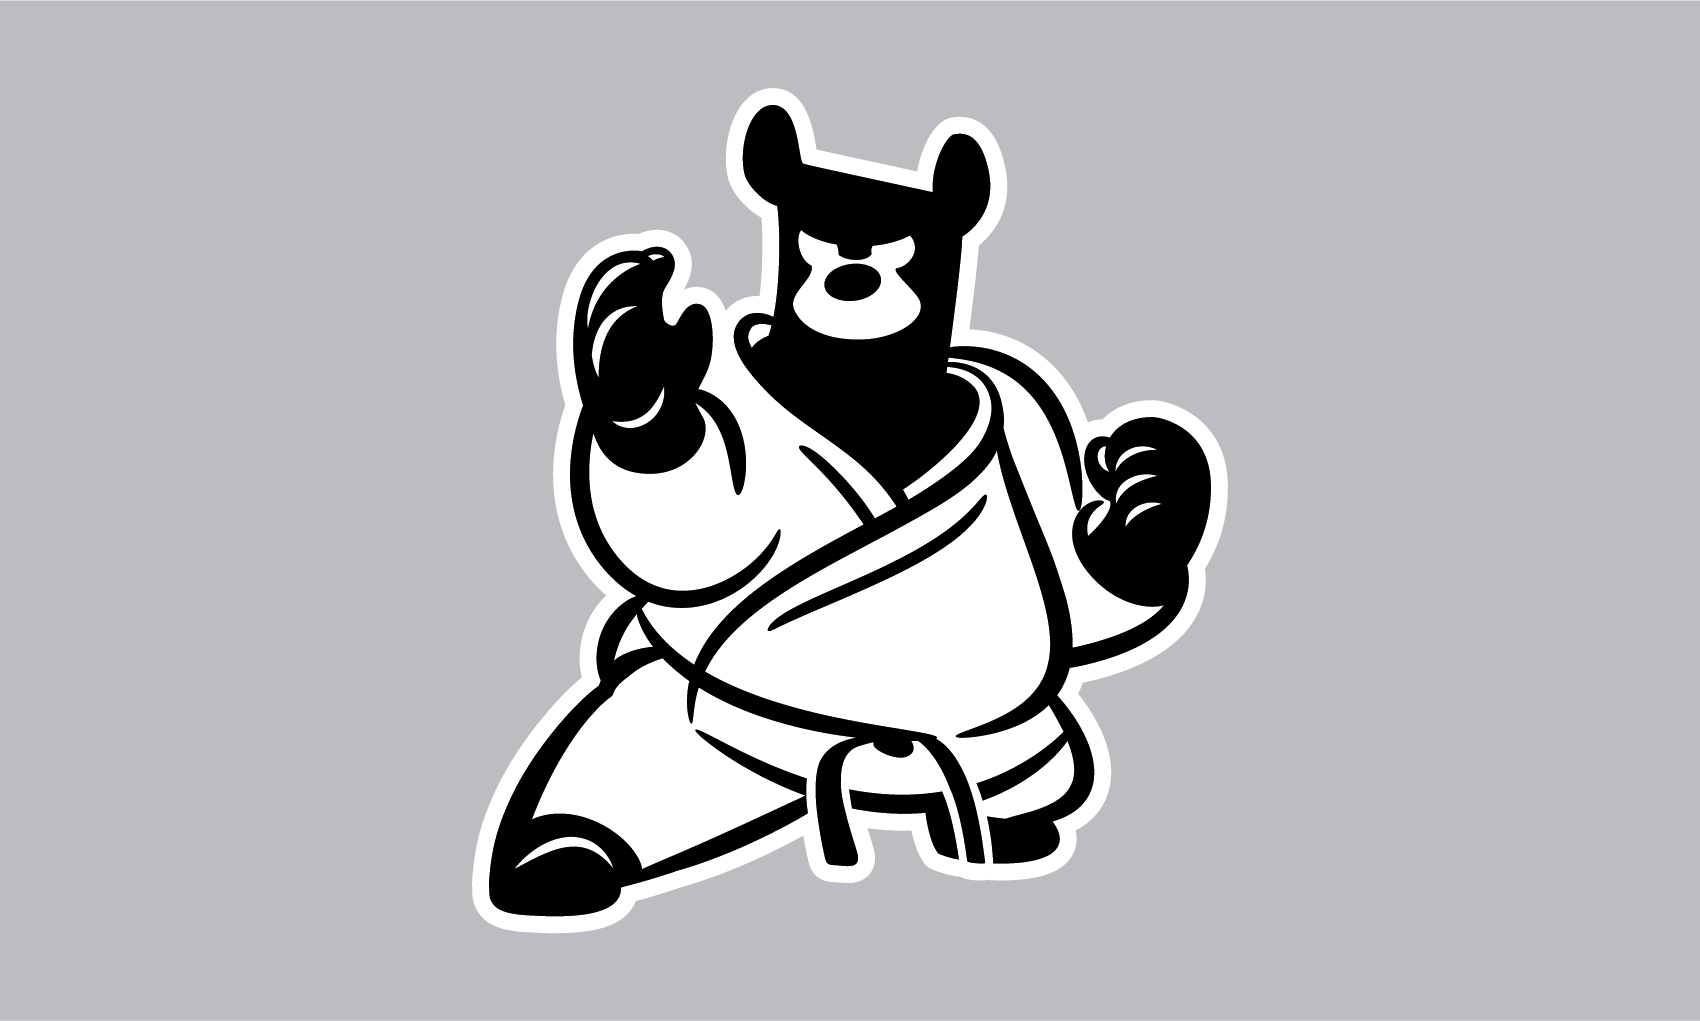 Bear Martial Arts Corporate Identity